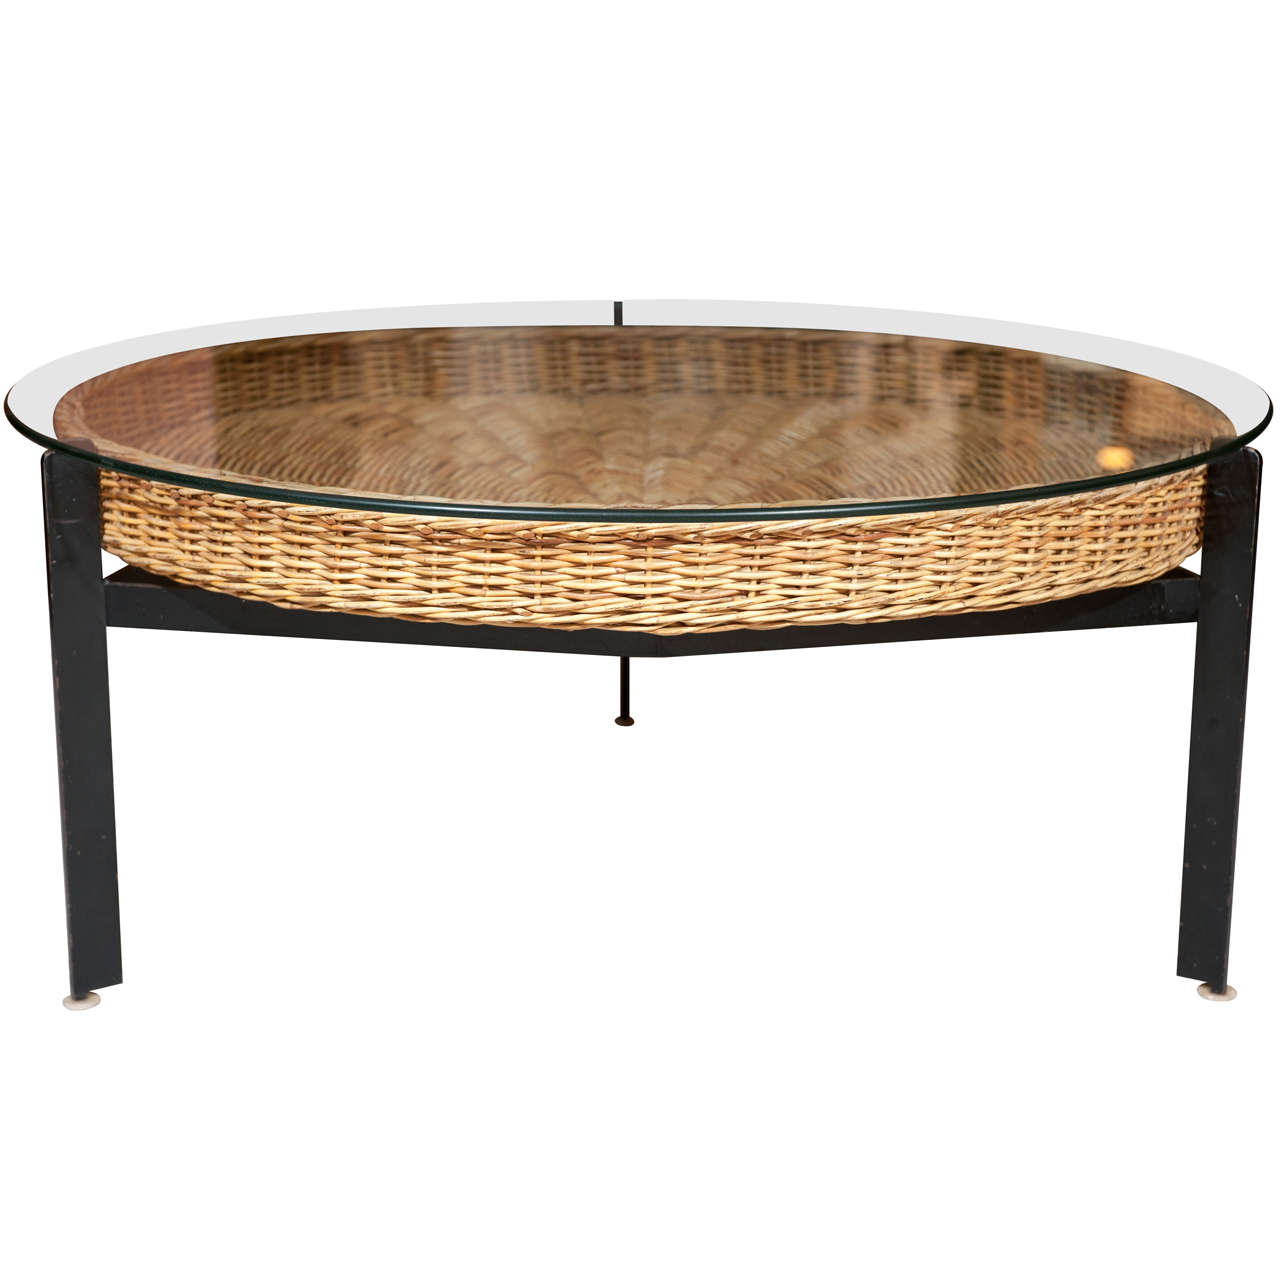 20th century basket cocktail table at 1stdibs Coffee table baskets